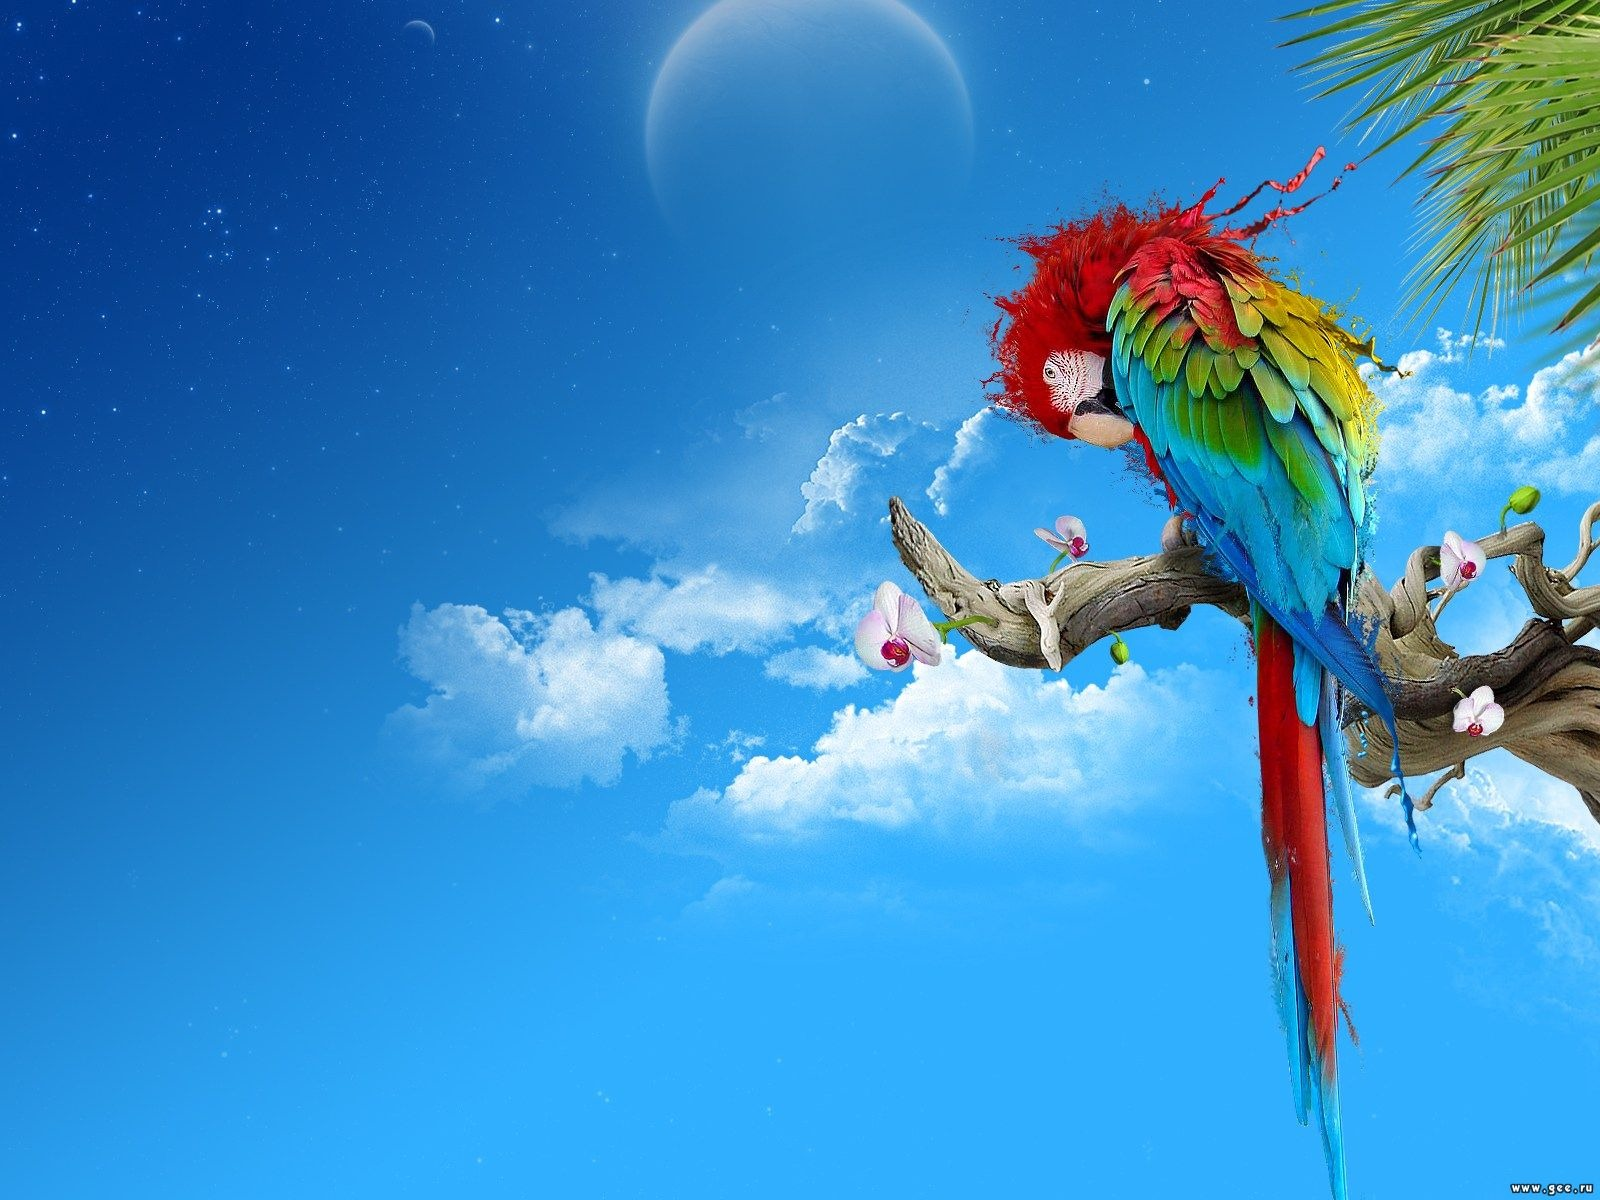 Colorful Desktop Wallpapers Backgrounds 1600x1200